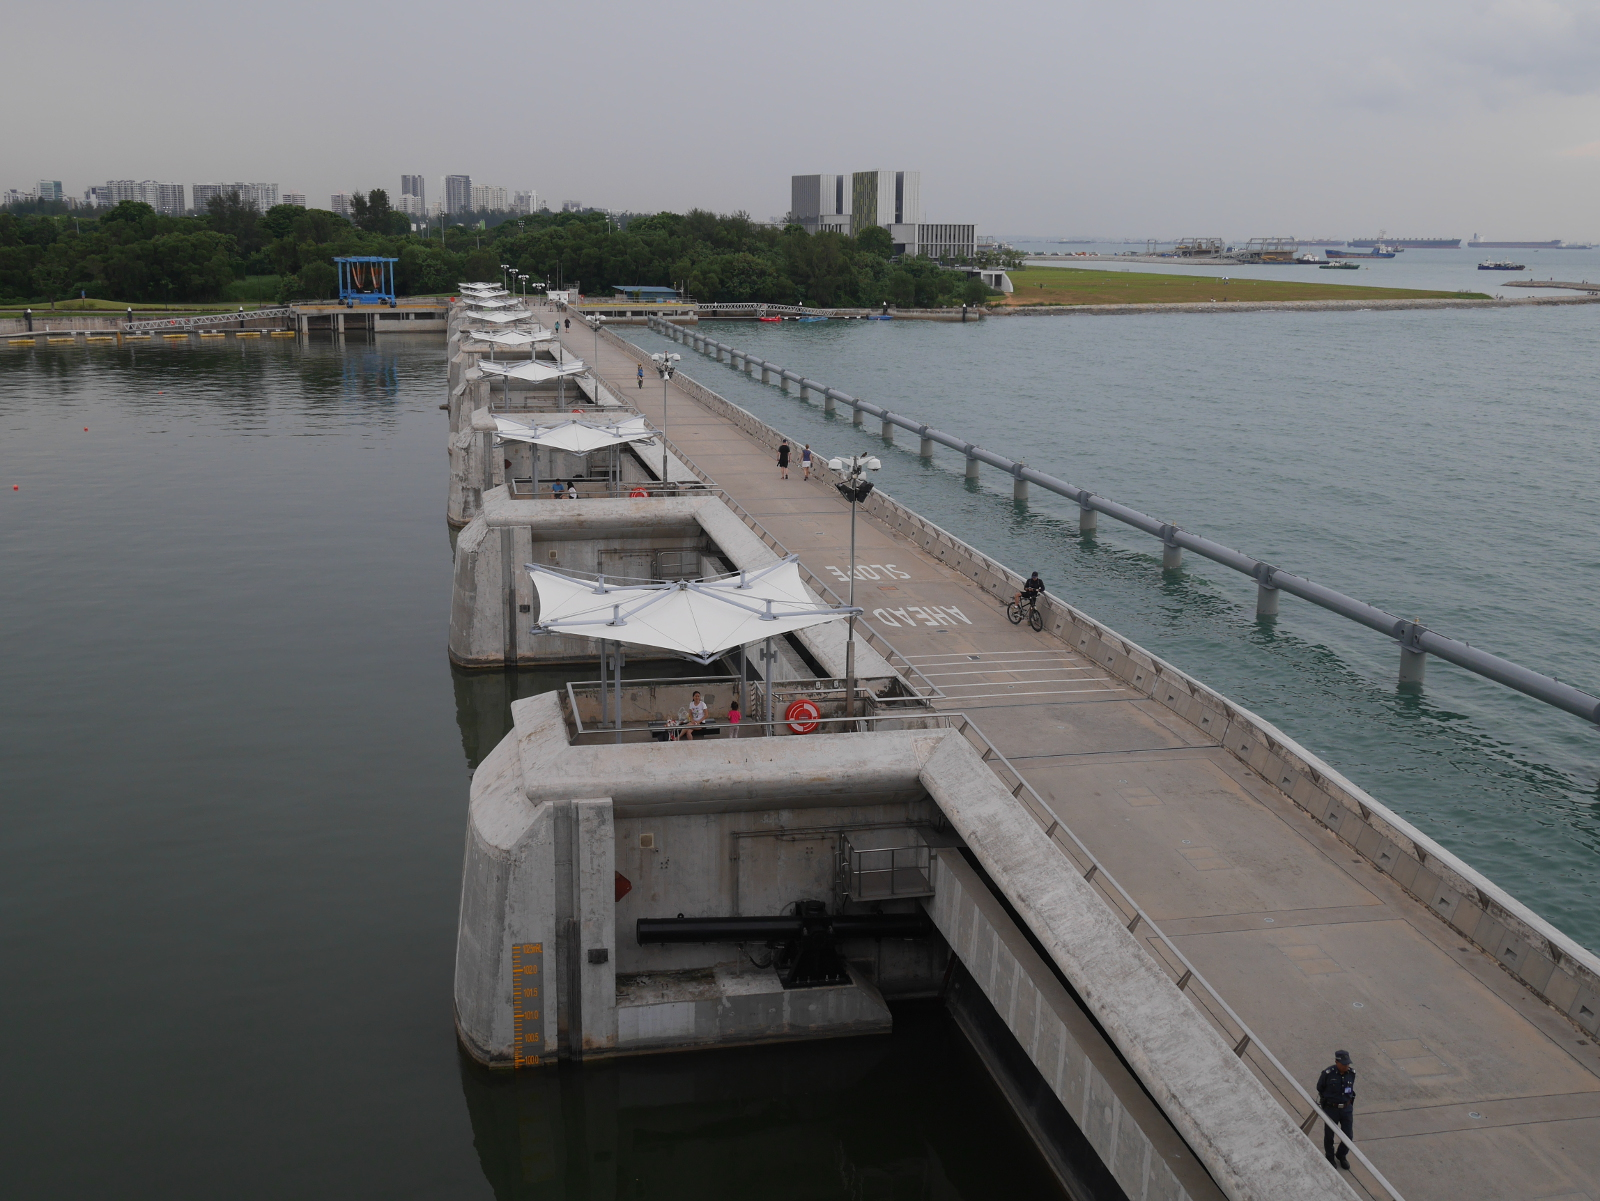 Marina Barrage, completed in 2008.